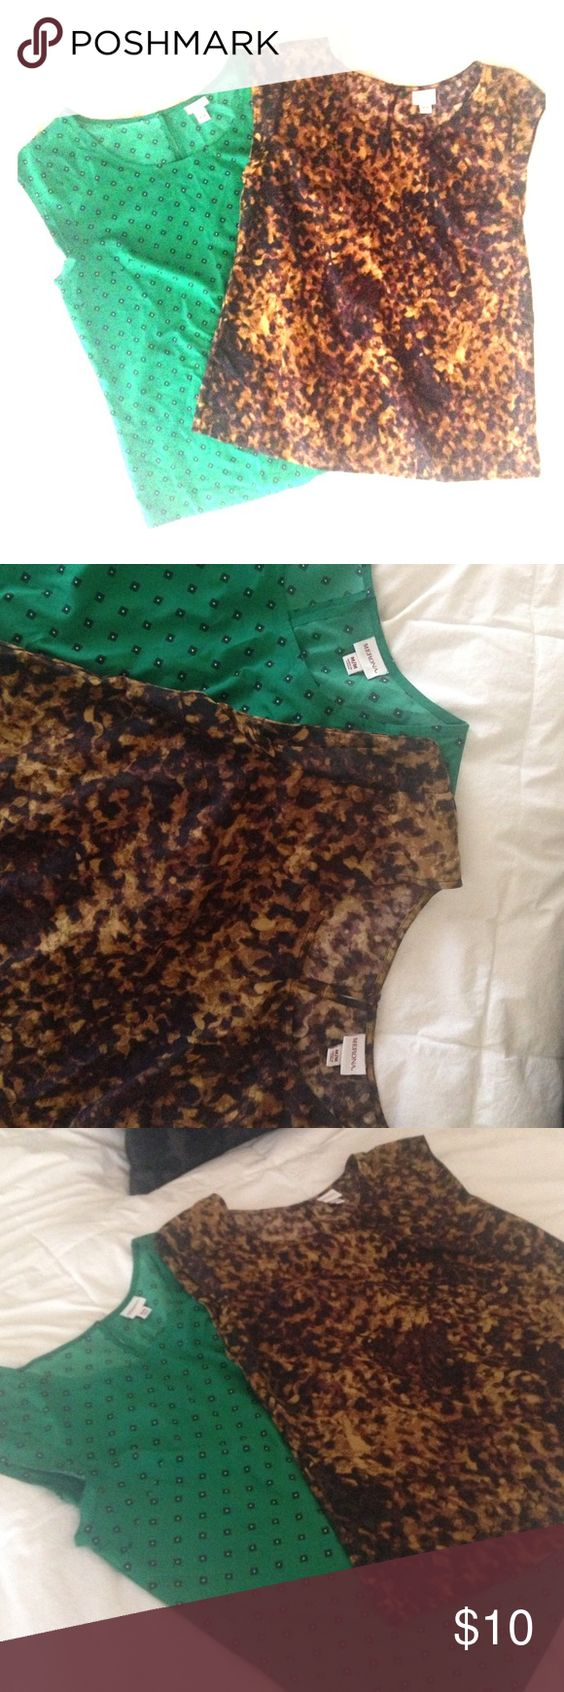 Short sleeve blouses Lightly worn (3 or 4 times). Short sleeve Merona blouses from Target. Merona Tops Blouses